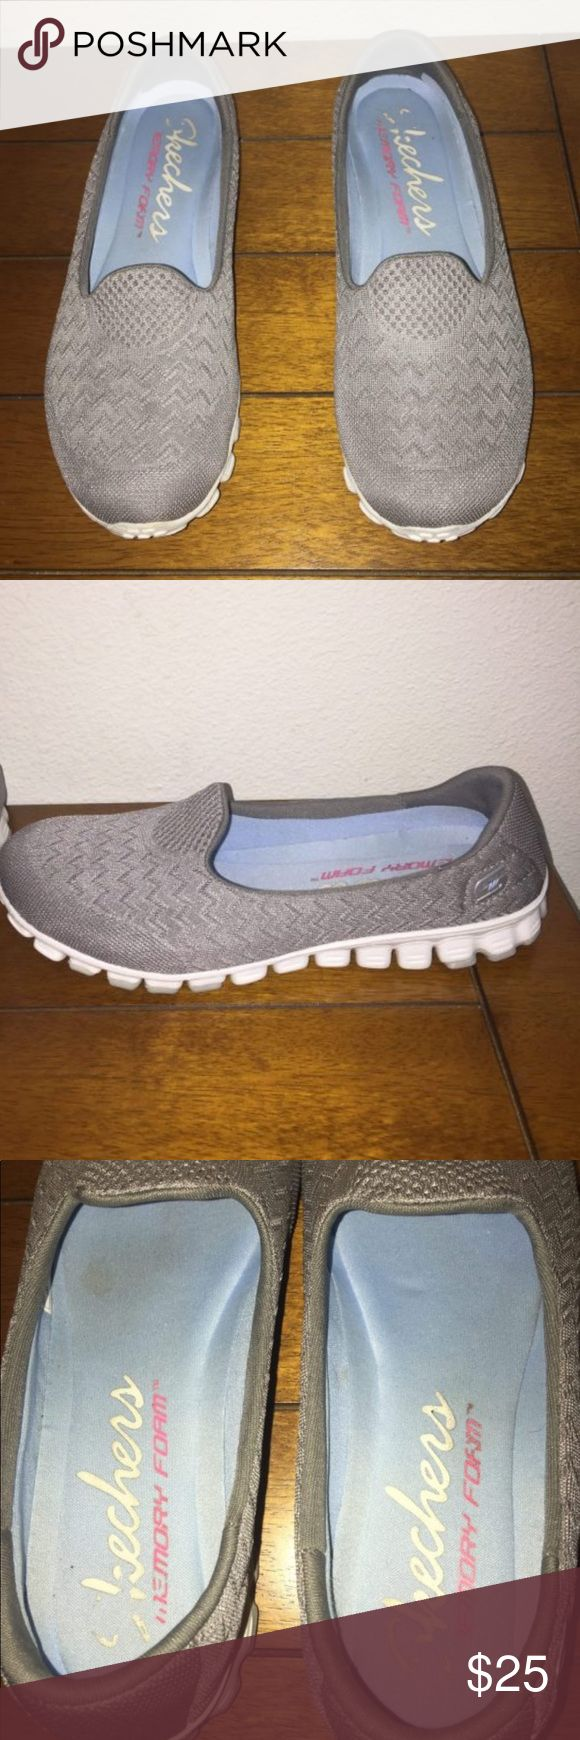 Skechers Shoes These have been worn. It no signs of wear. Excellent condition! Skechers Shoes Flats & Loafers